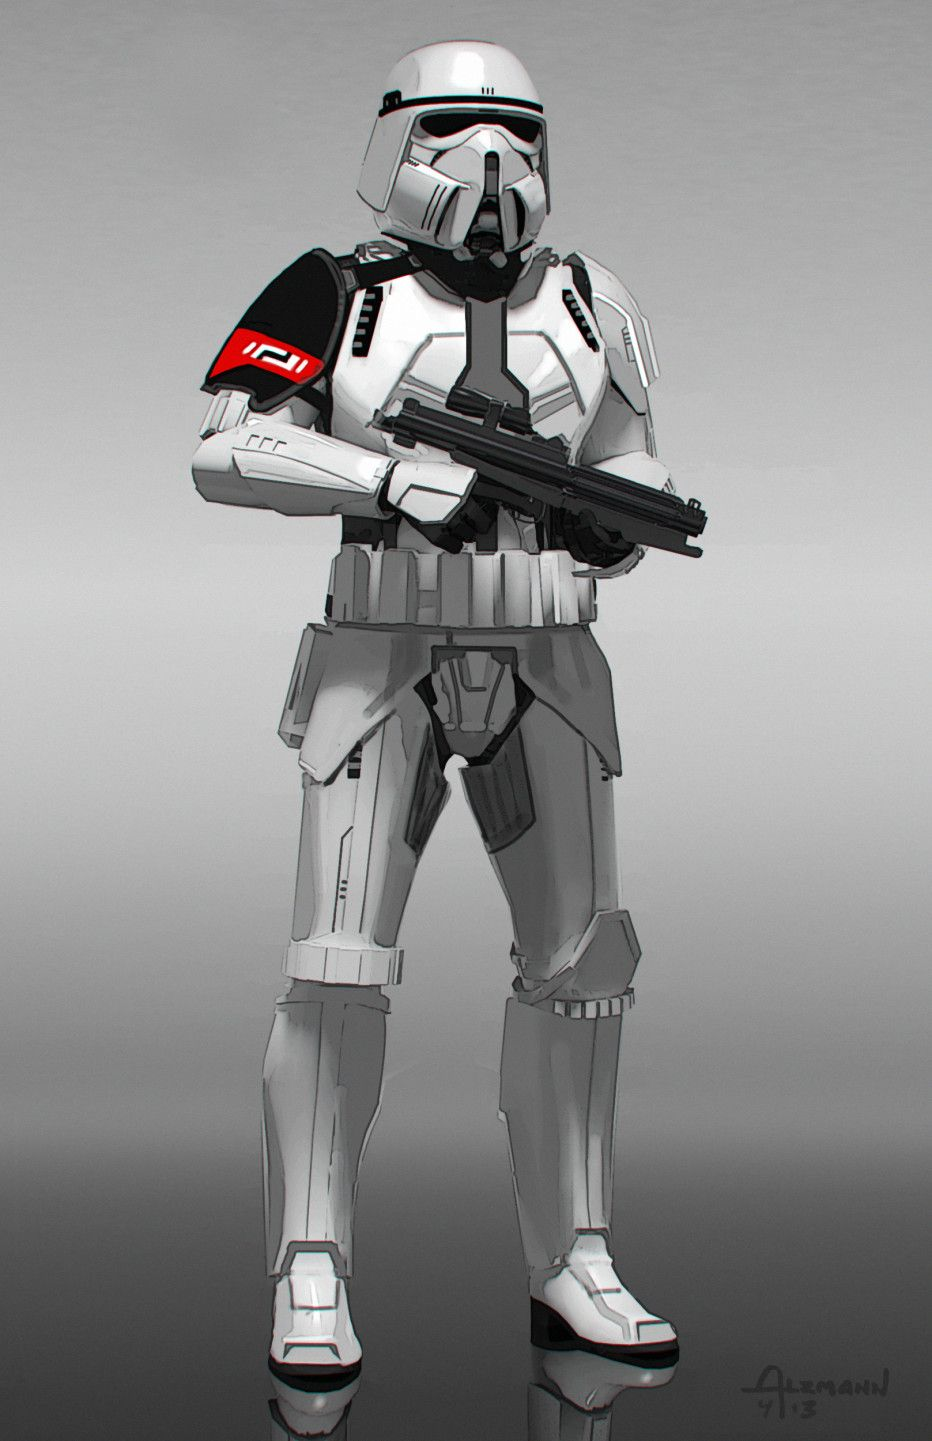 Get Lost In The Art Of Star Wars The Force Awakens Star Wars Vii Star Wars Images Star Wars Trooper